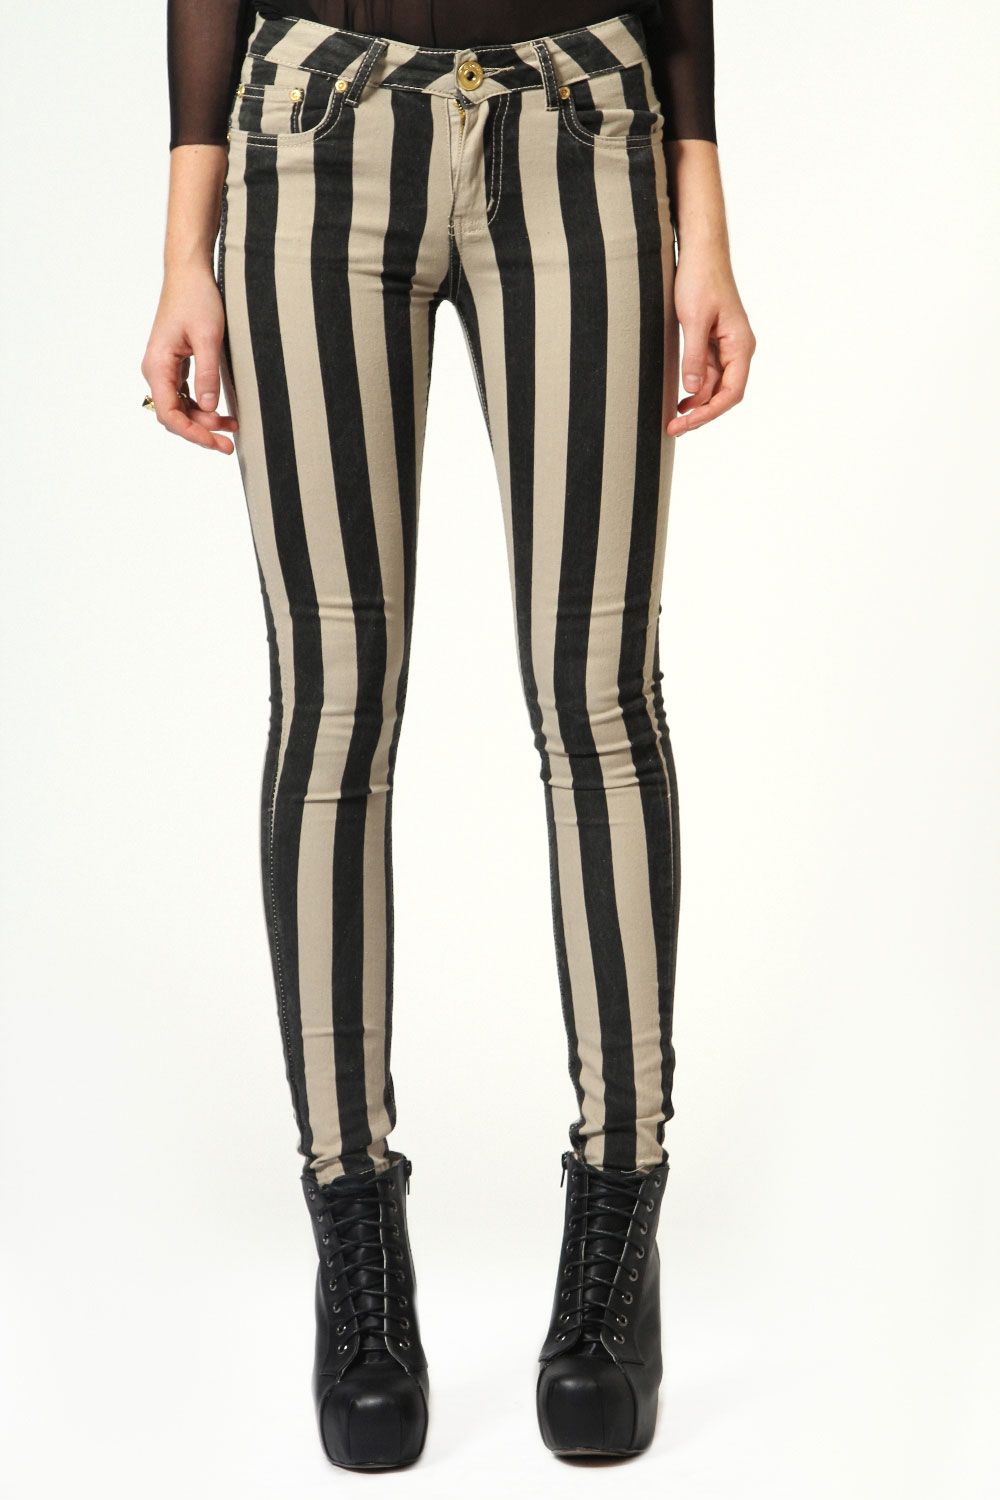 0bf218a391f Lolita Thick Striped Skinny Jeans £10.00 (sadly it s not in my size for  this color.)